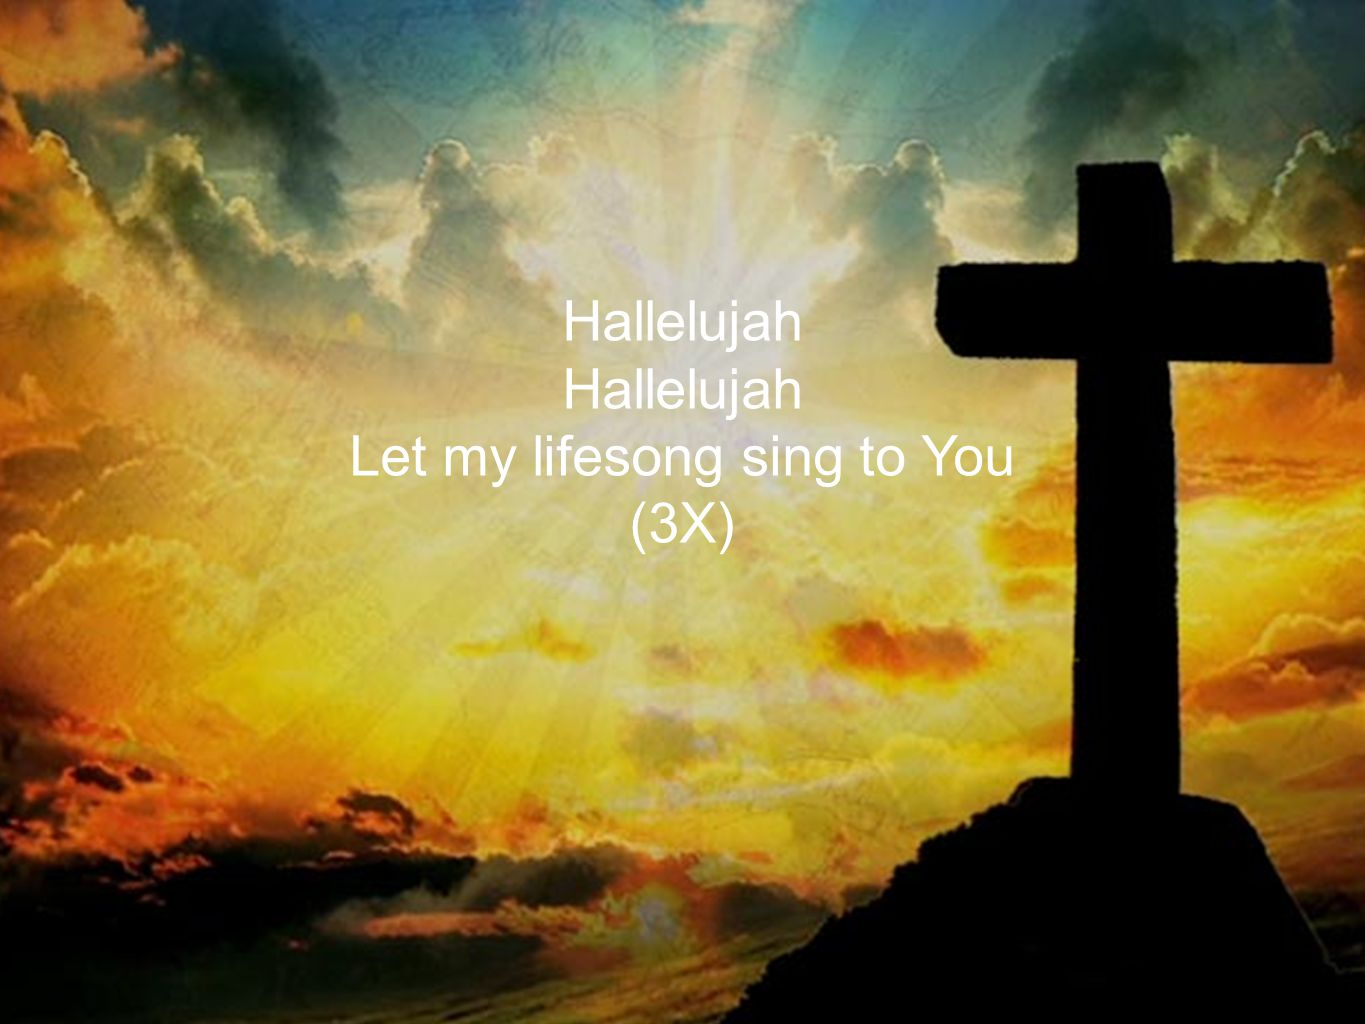 Hallelujah Let my lifesong sing to You (3X)